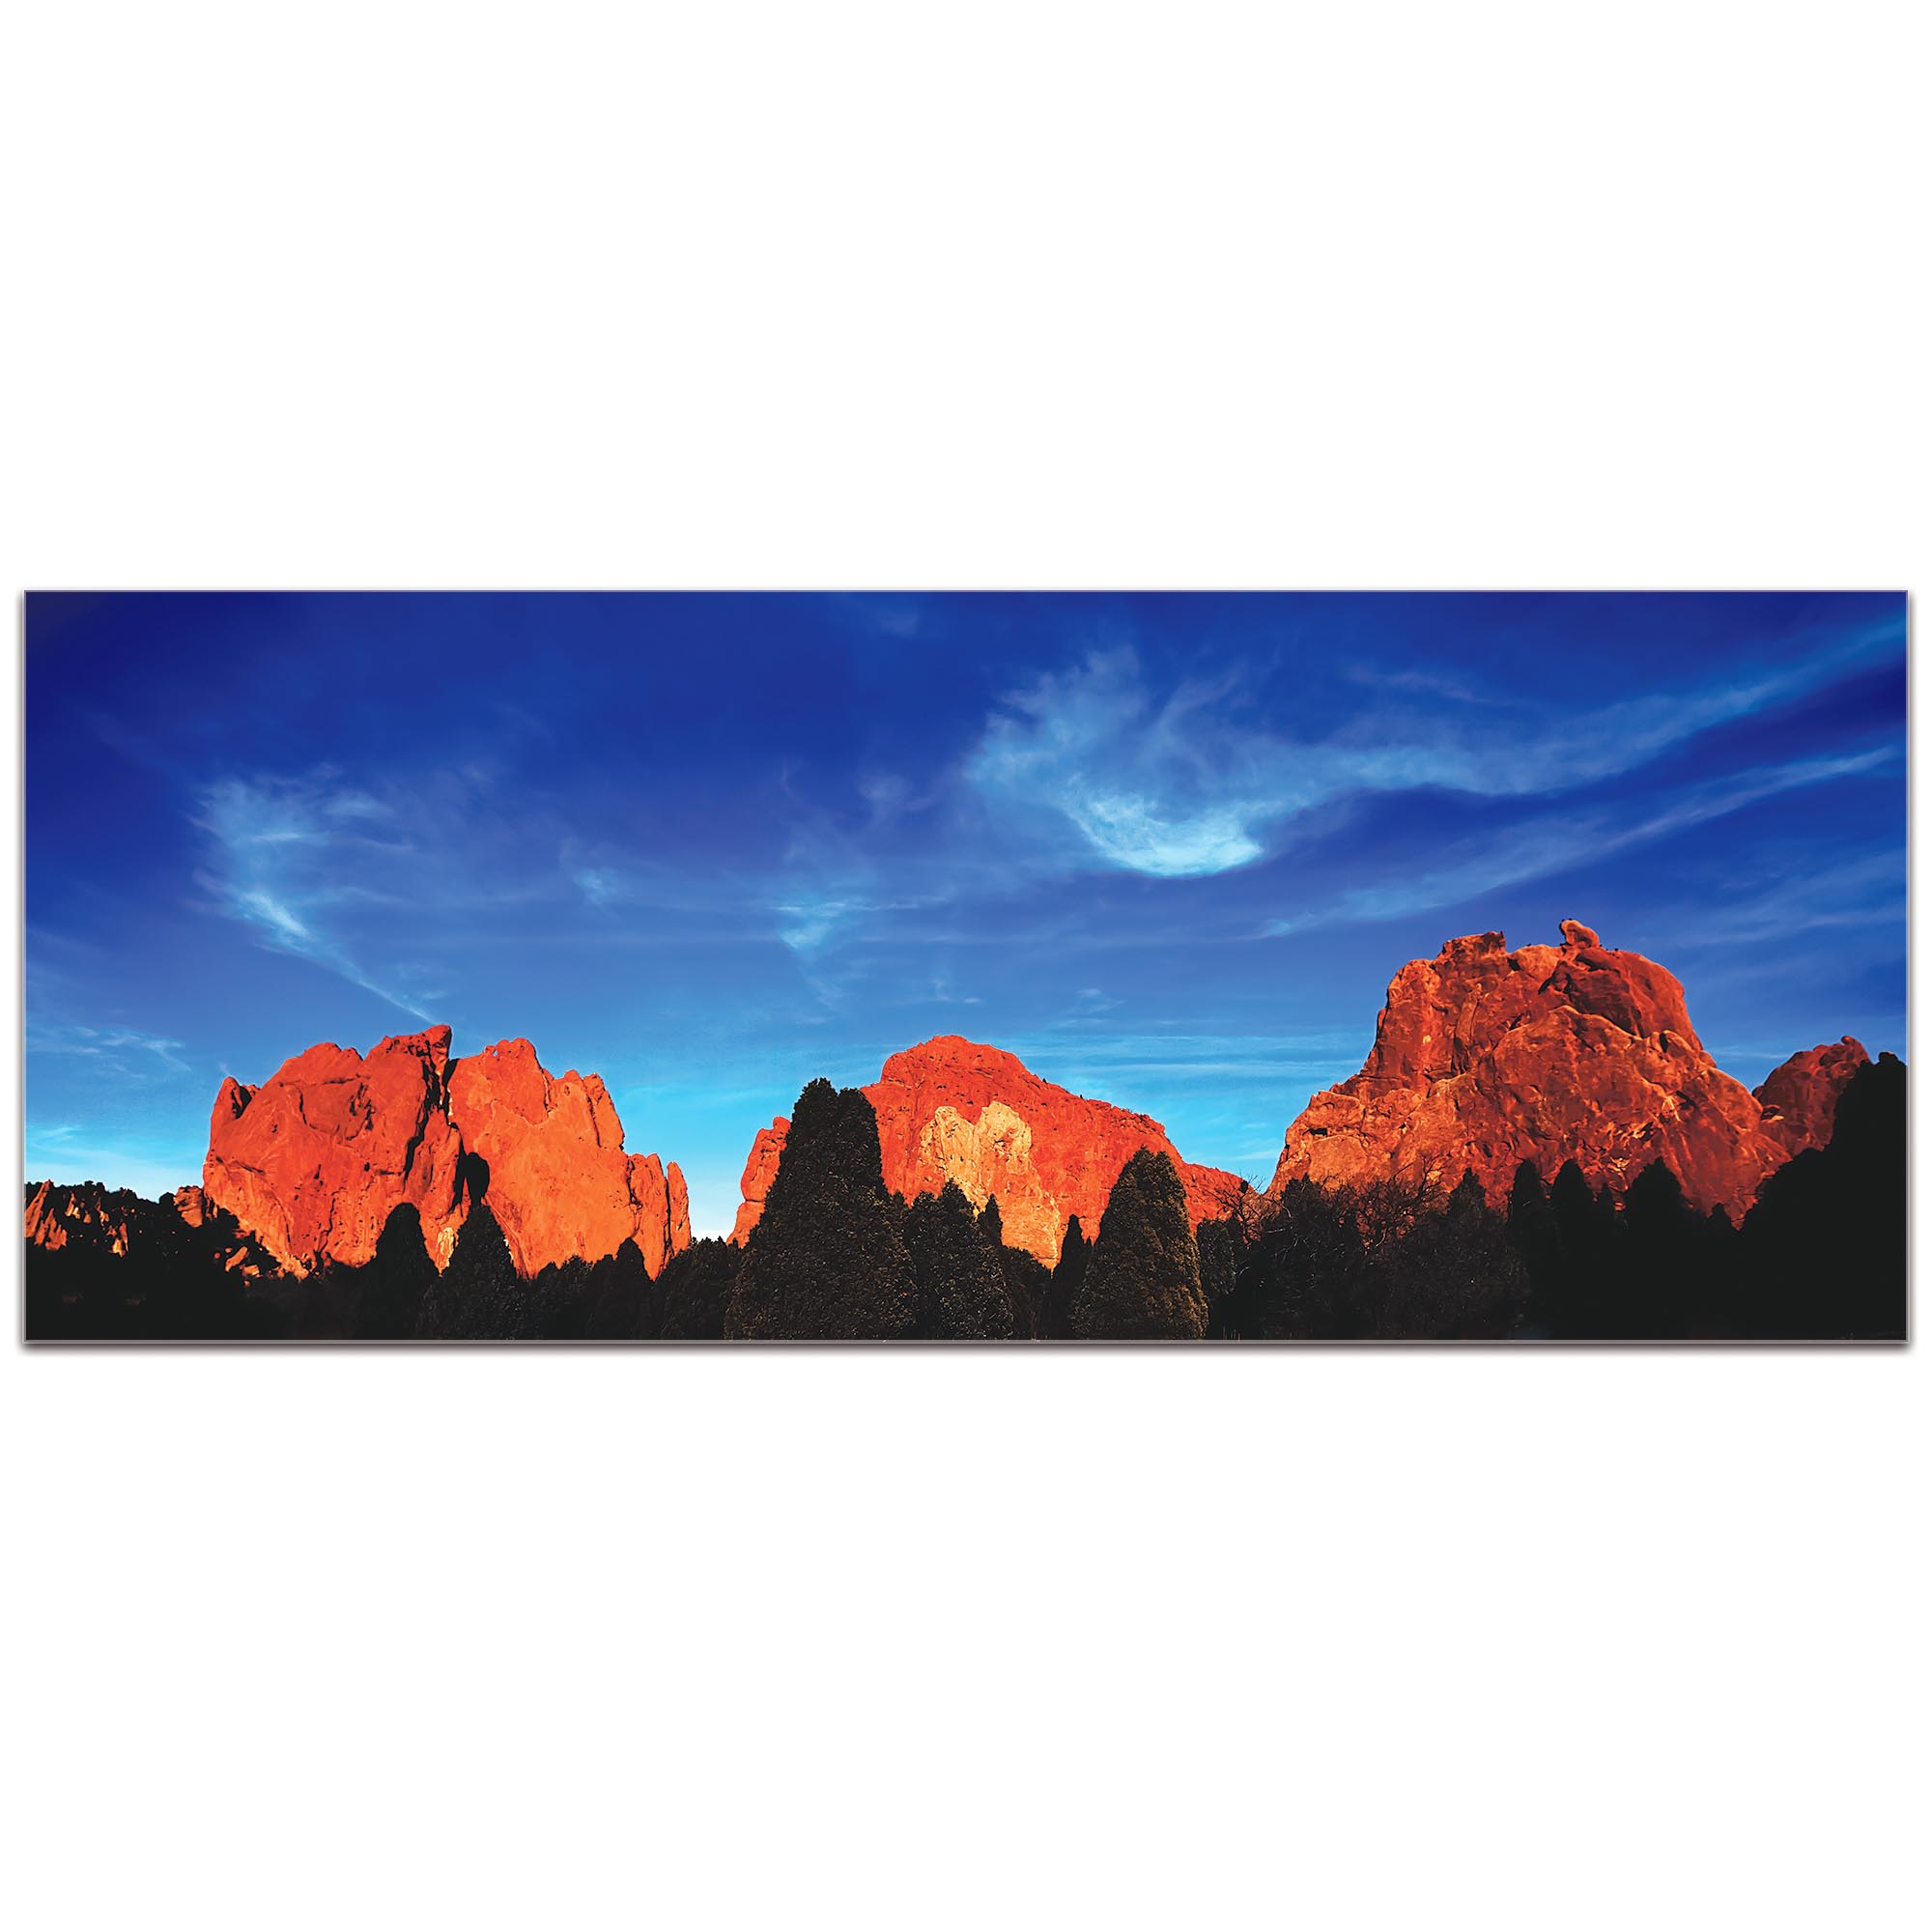 Landscape Photography 'Rocky Towers' - Desert Mountains Art on Metal or Plexiglass - Image 2